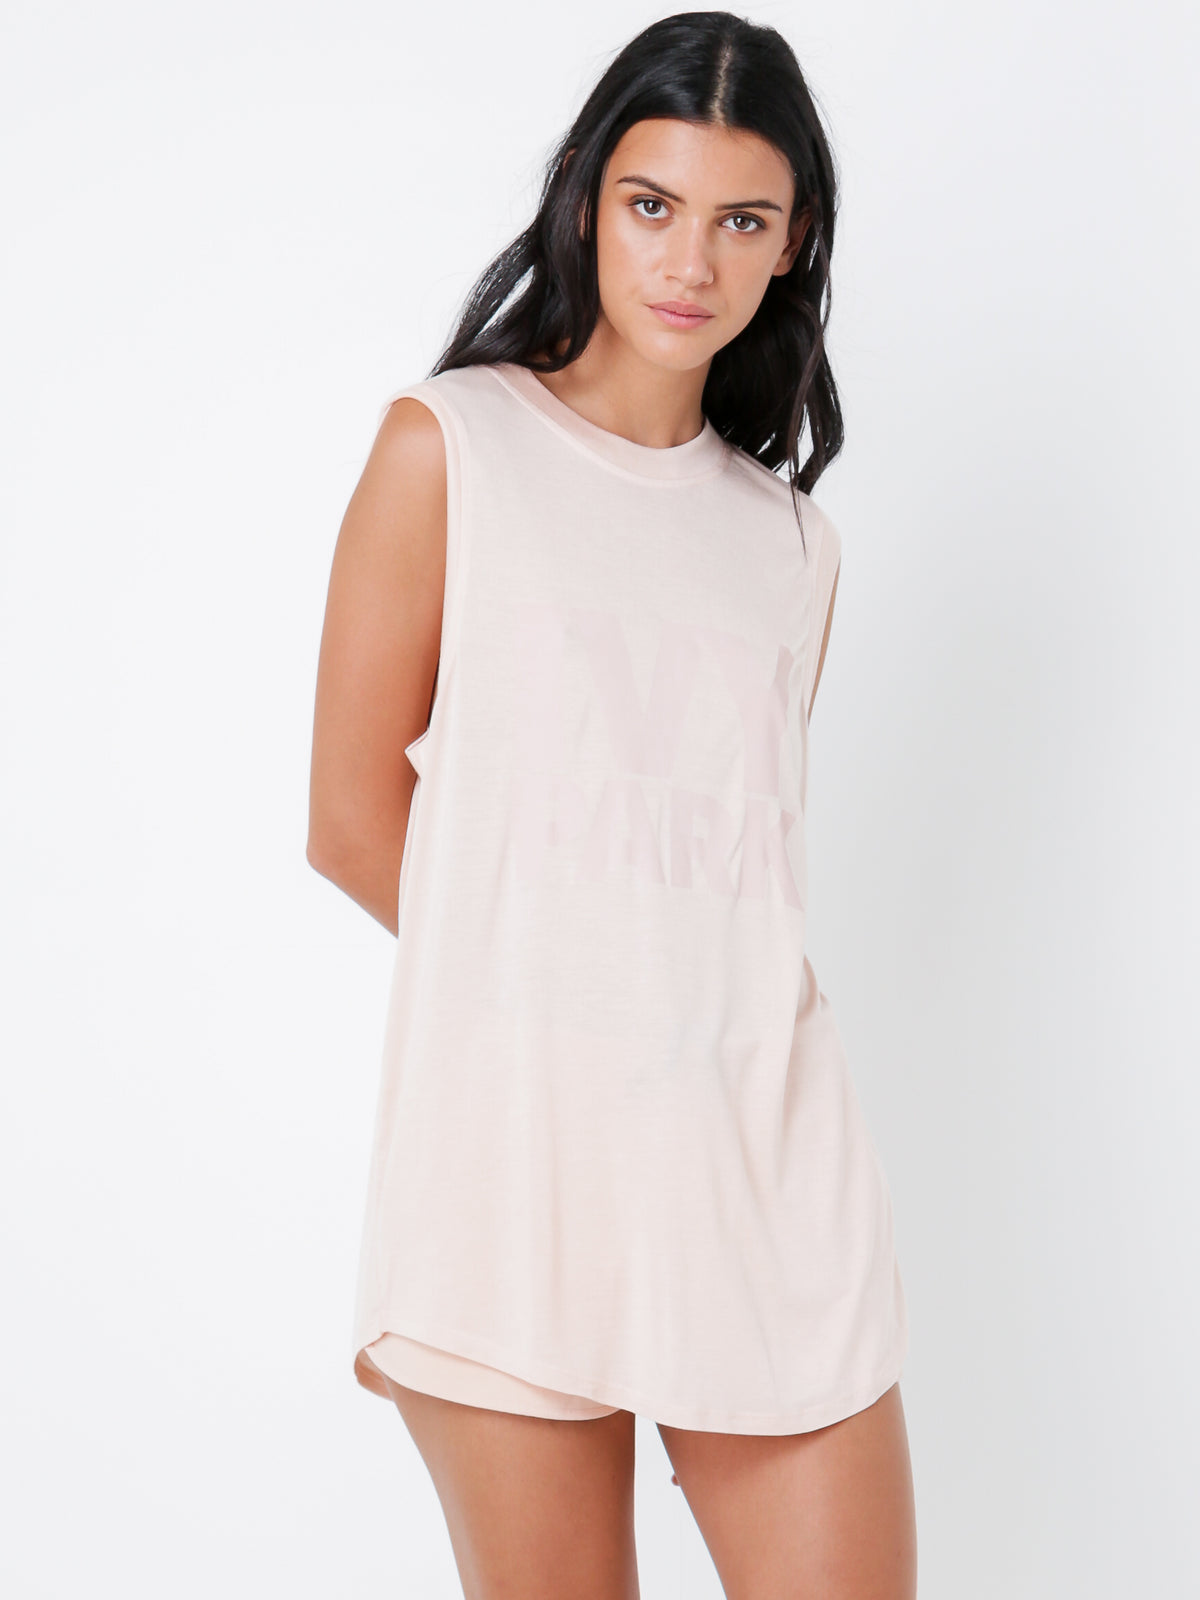 Logo Tank in Blush